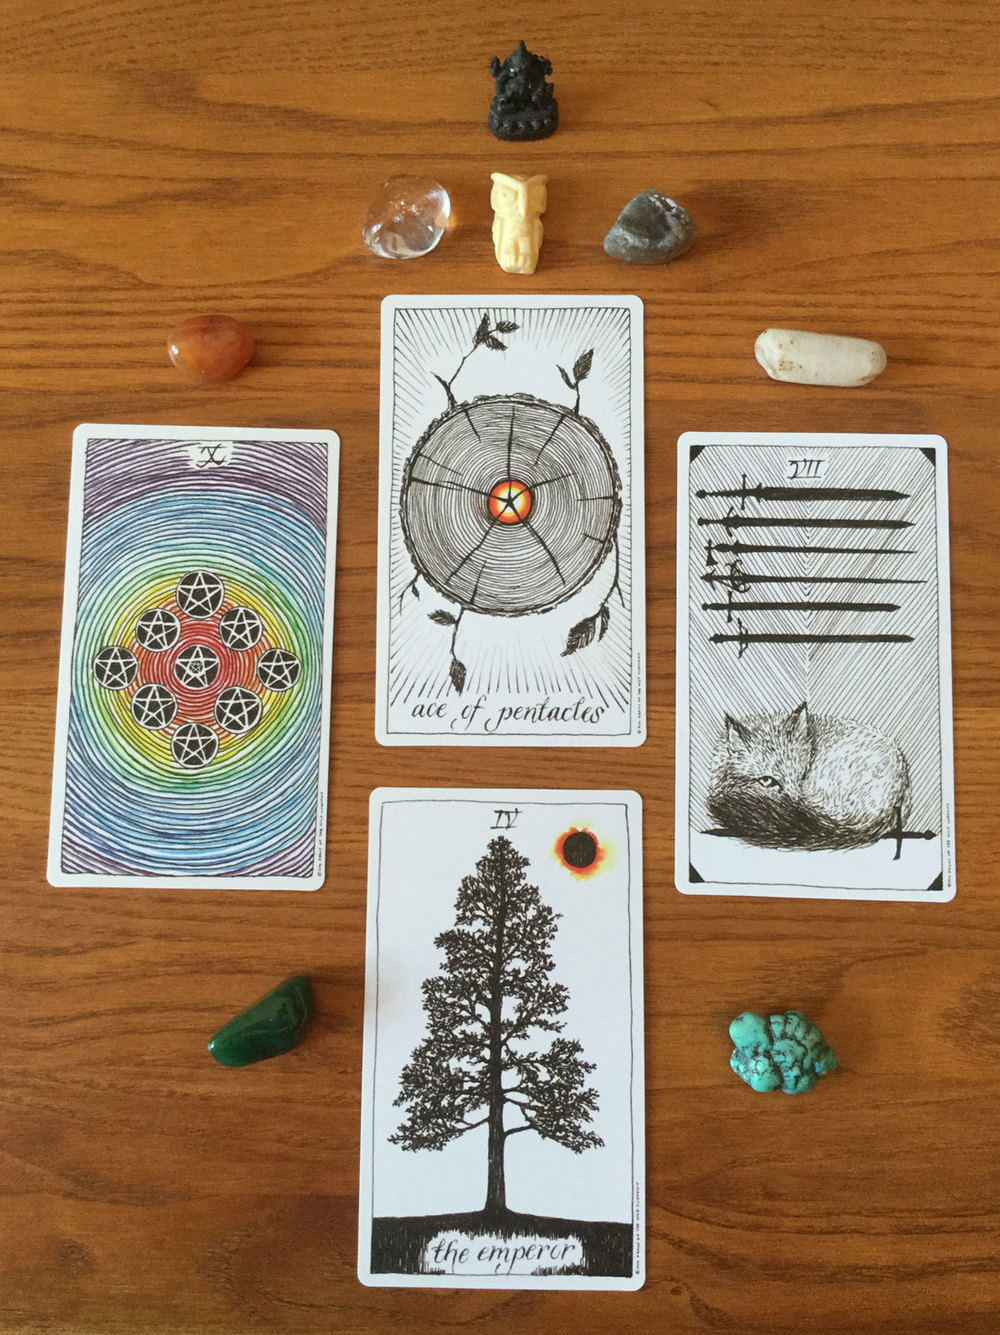 The cards, friends, and allies. From the top: Ganesha, Owl, Beach Agate, Crystal Quartz, Turquoise, Green Chalcedony, Carnelian, Clear Quartz.